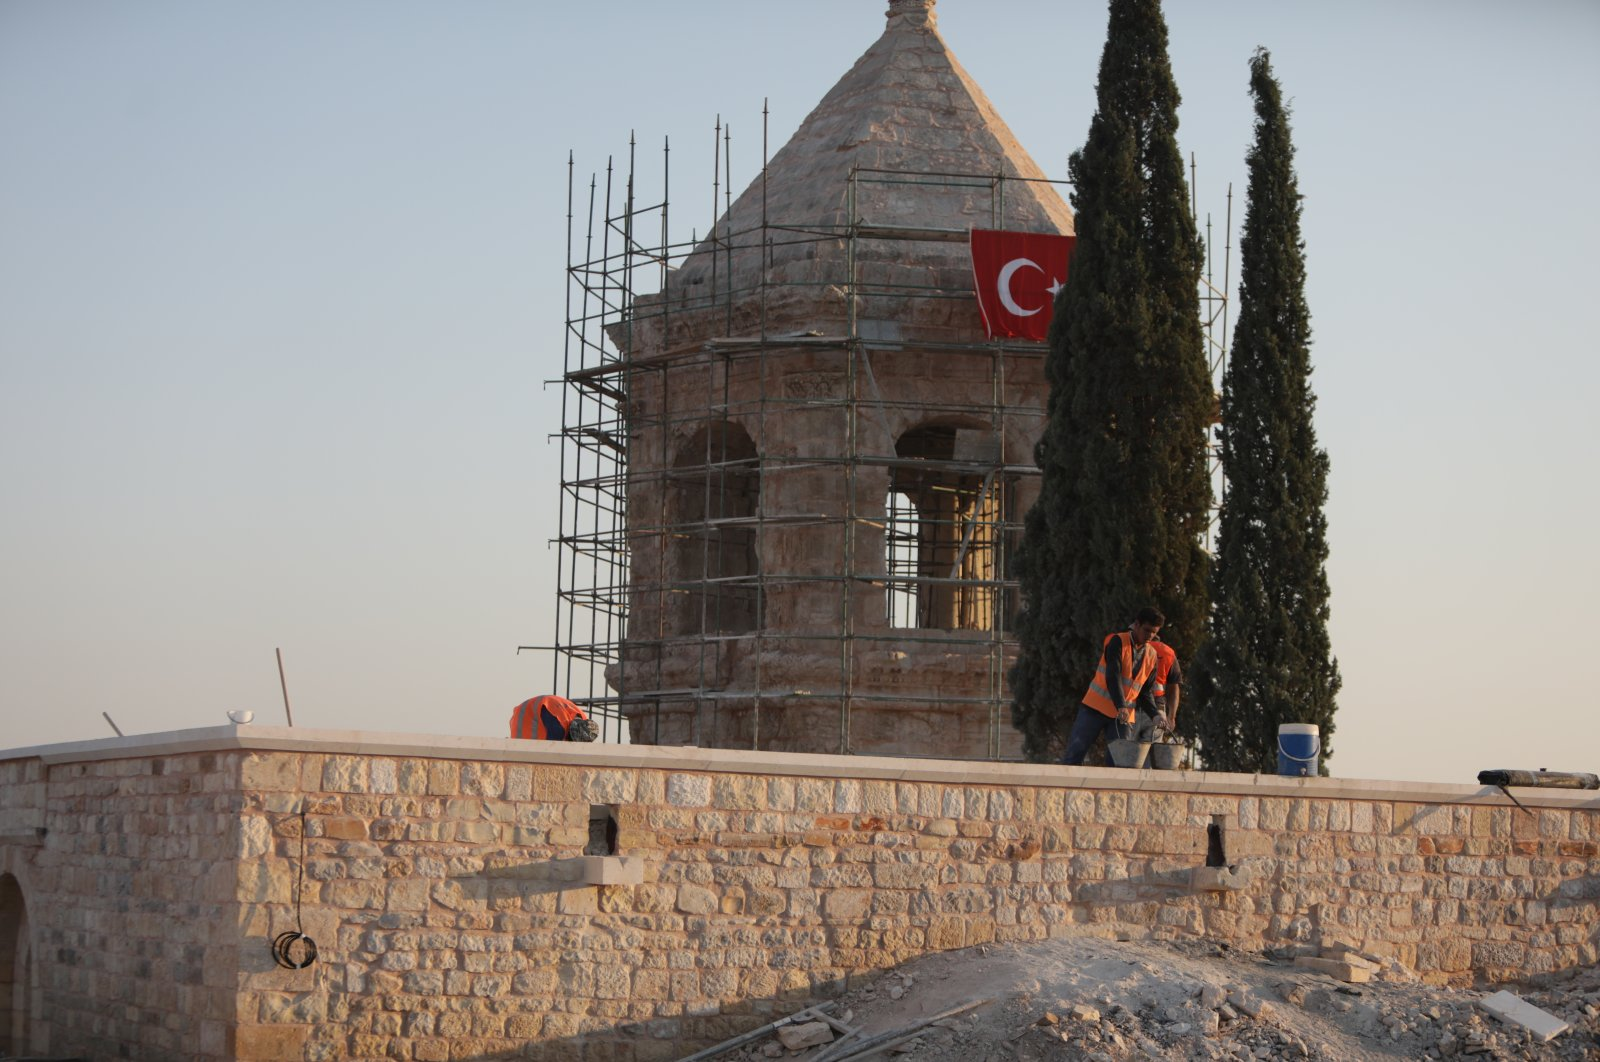 Turkey's Regional Directorate of Foundations renovates a historical site damaged by the YPG/PKK terrorist group in the northern Afrin province, Syria, Aug. 12, 2020 (AA Photo)